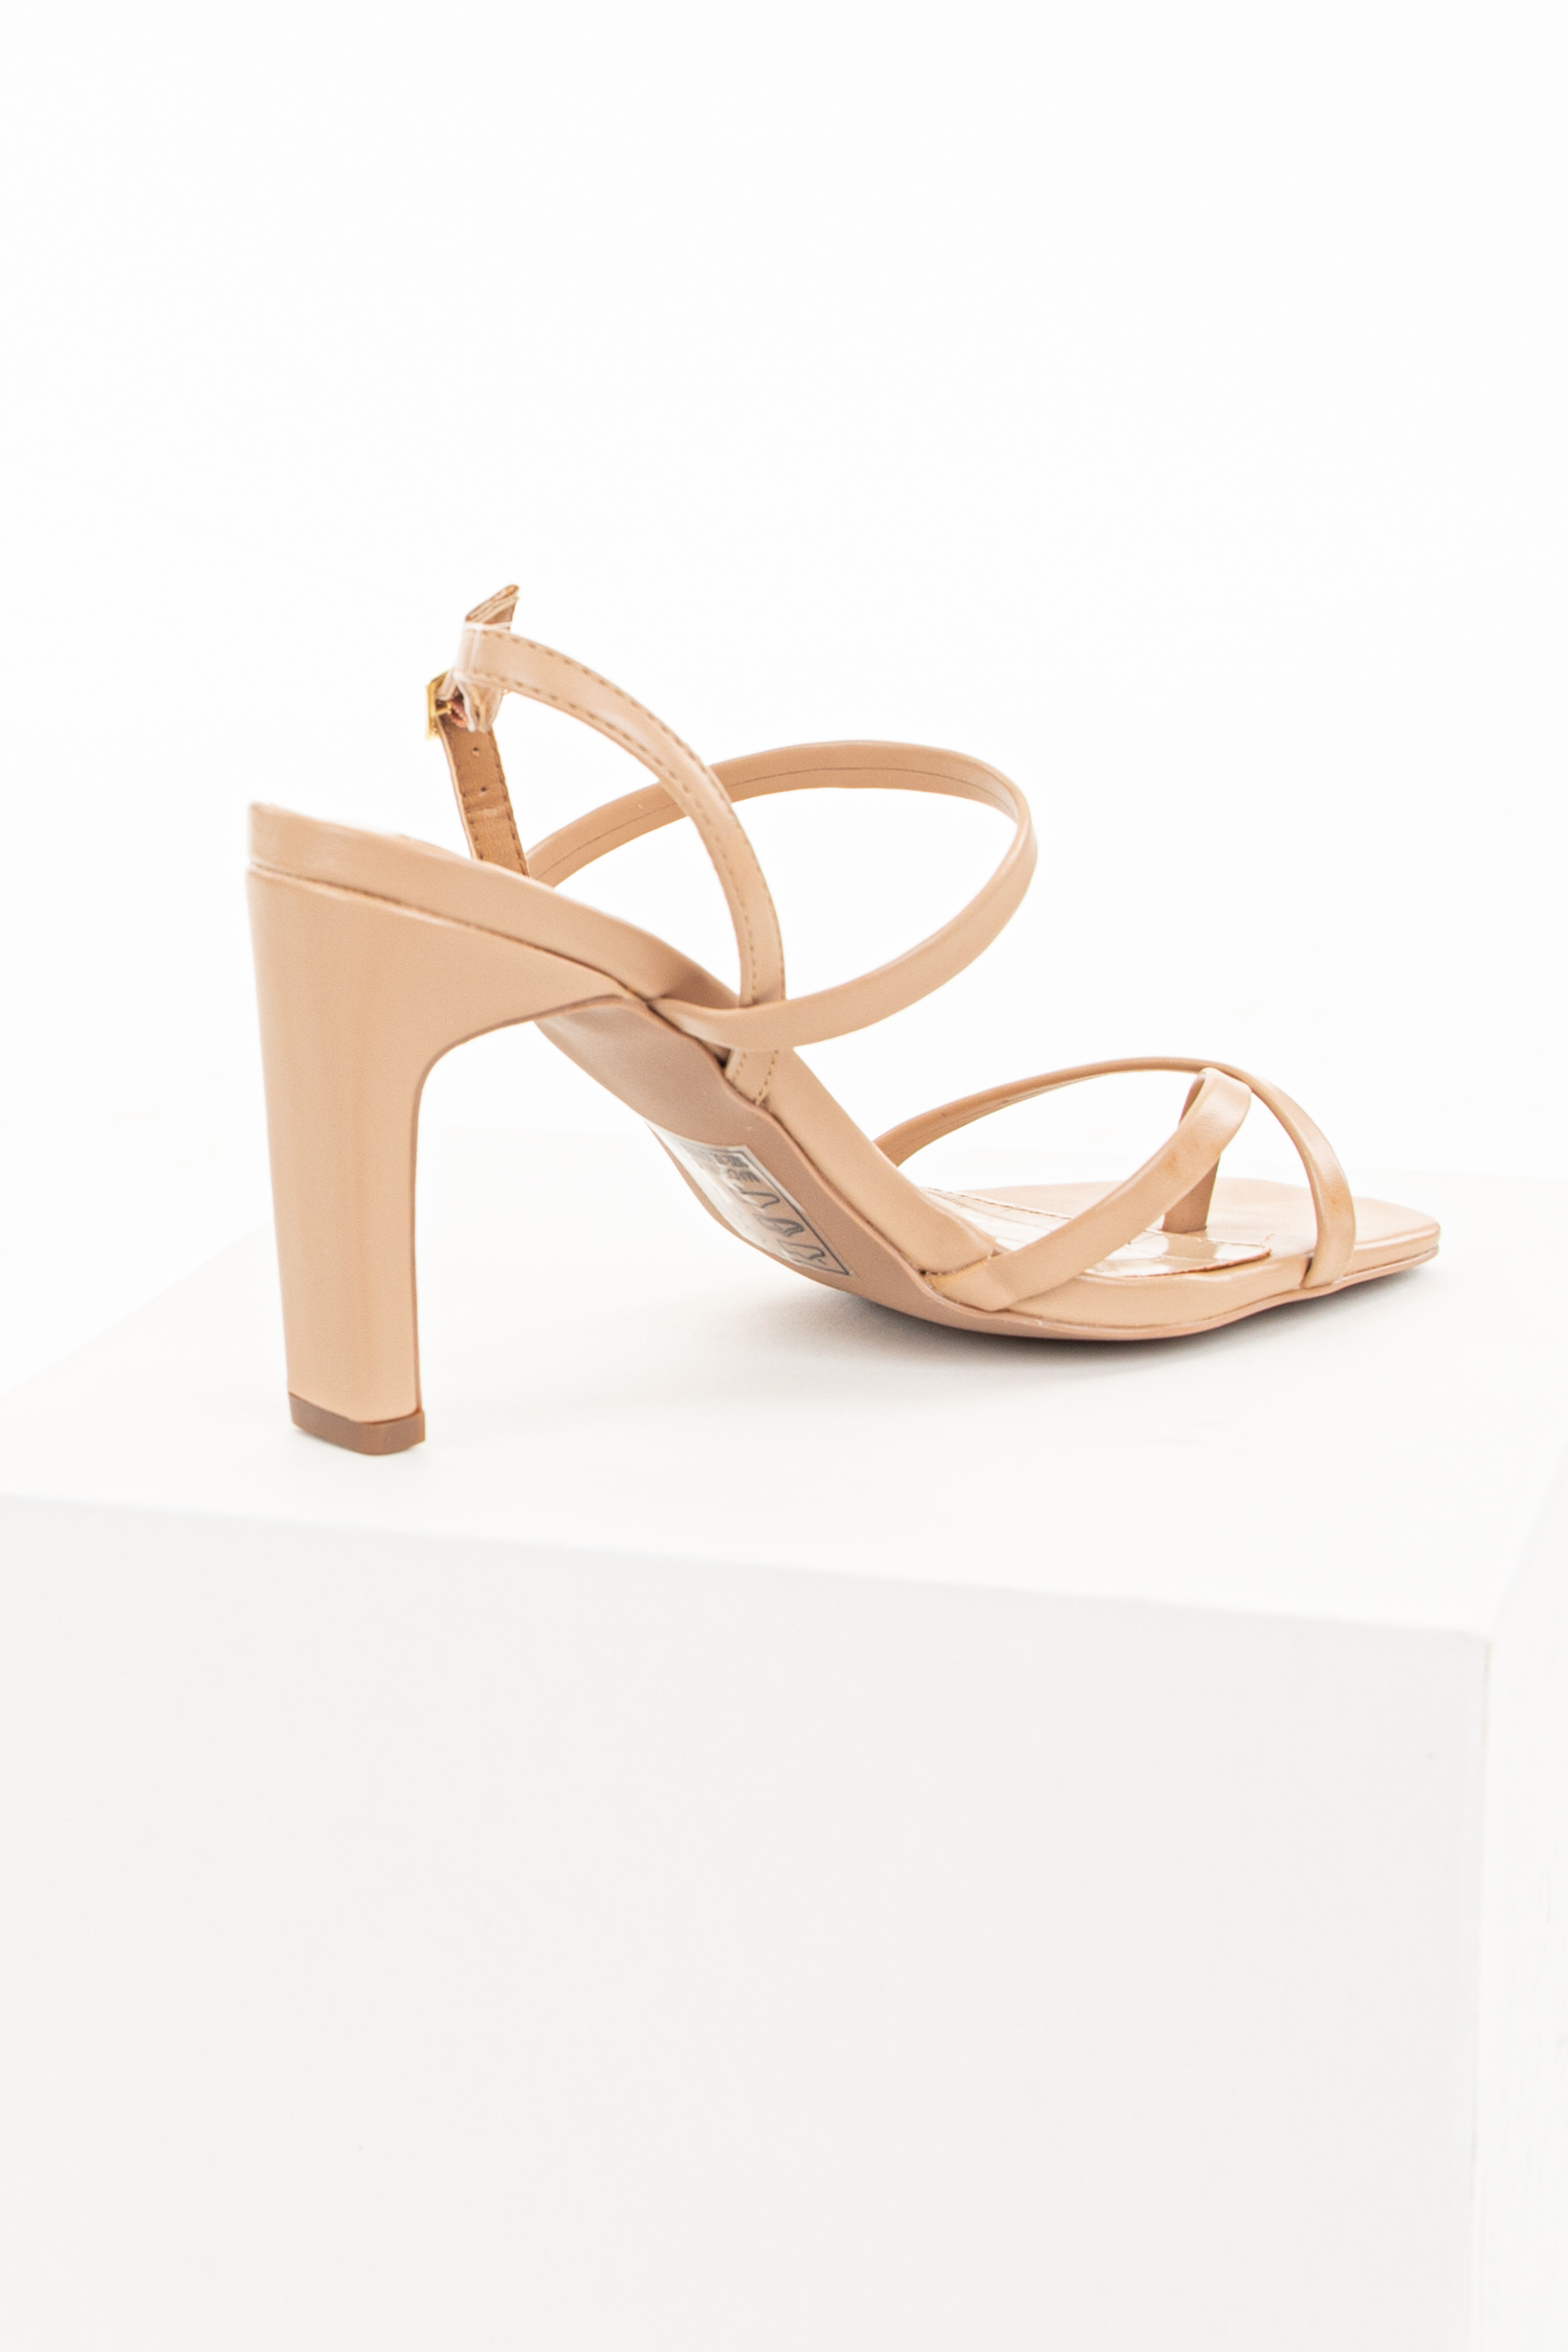 Desert Sand Square Toe Buckle Up Strappy High Heel Sandals